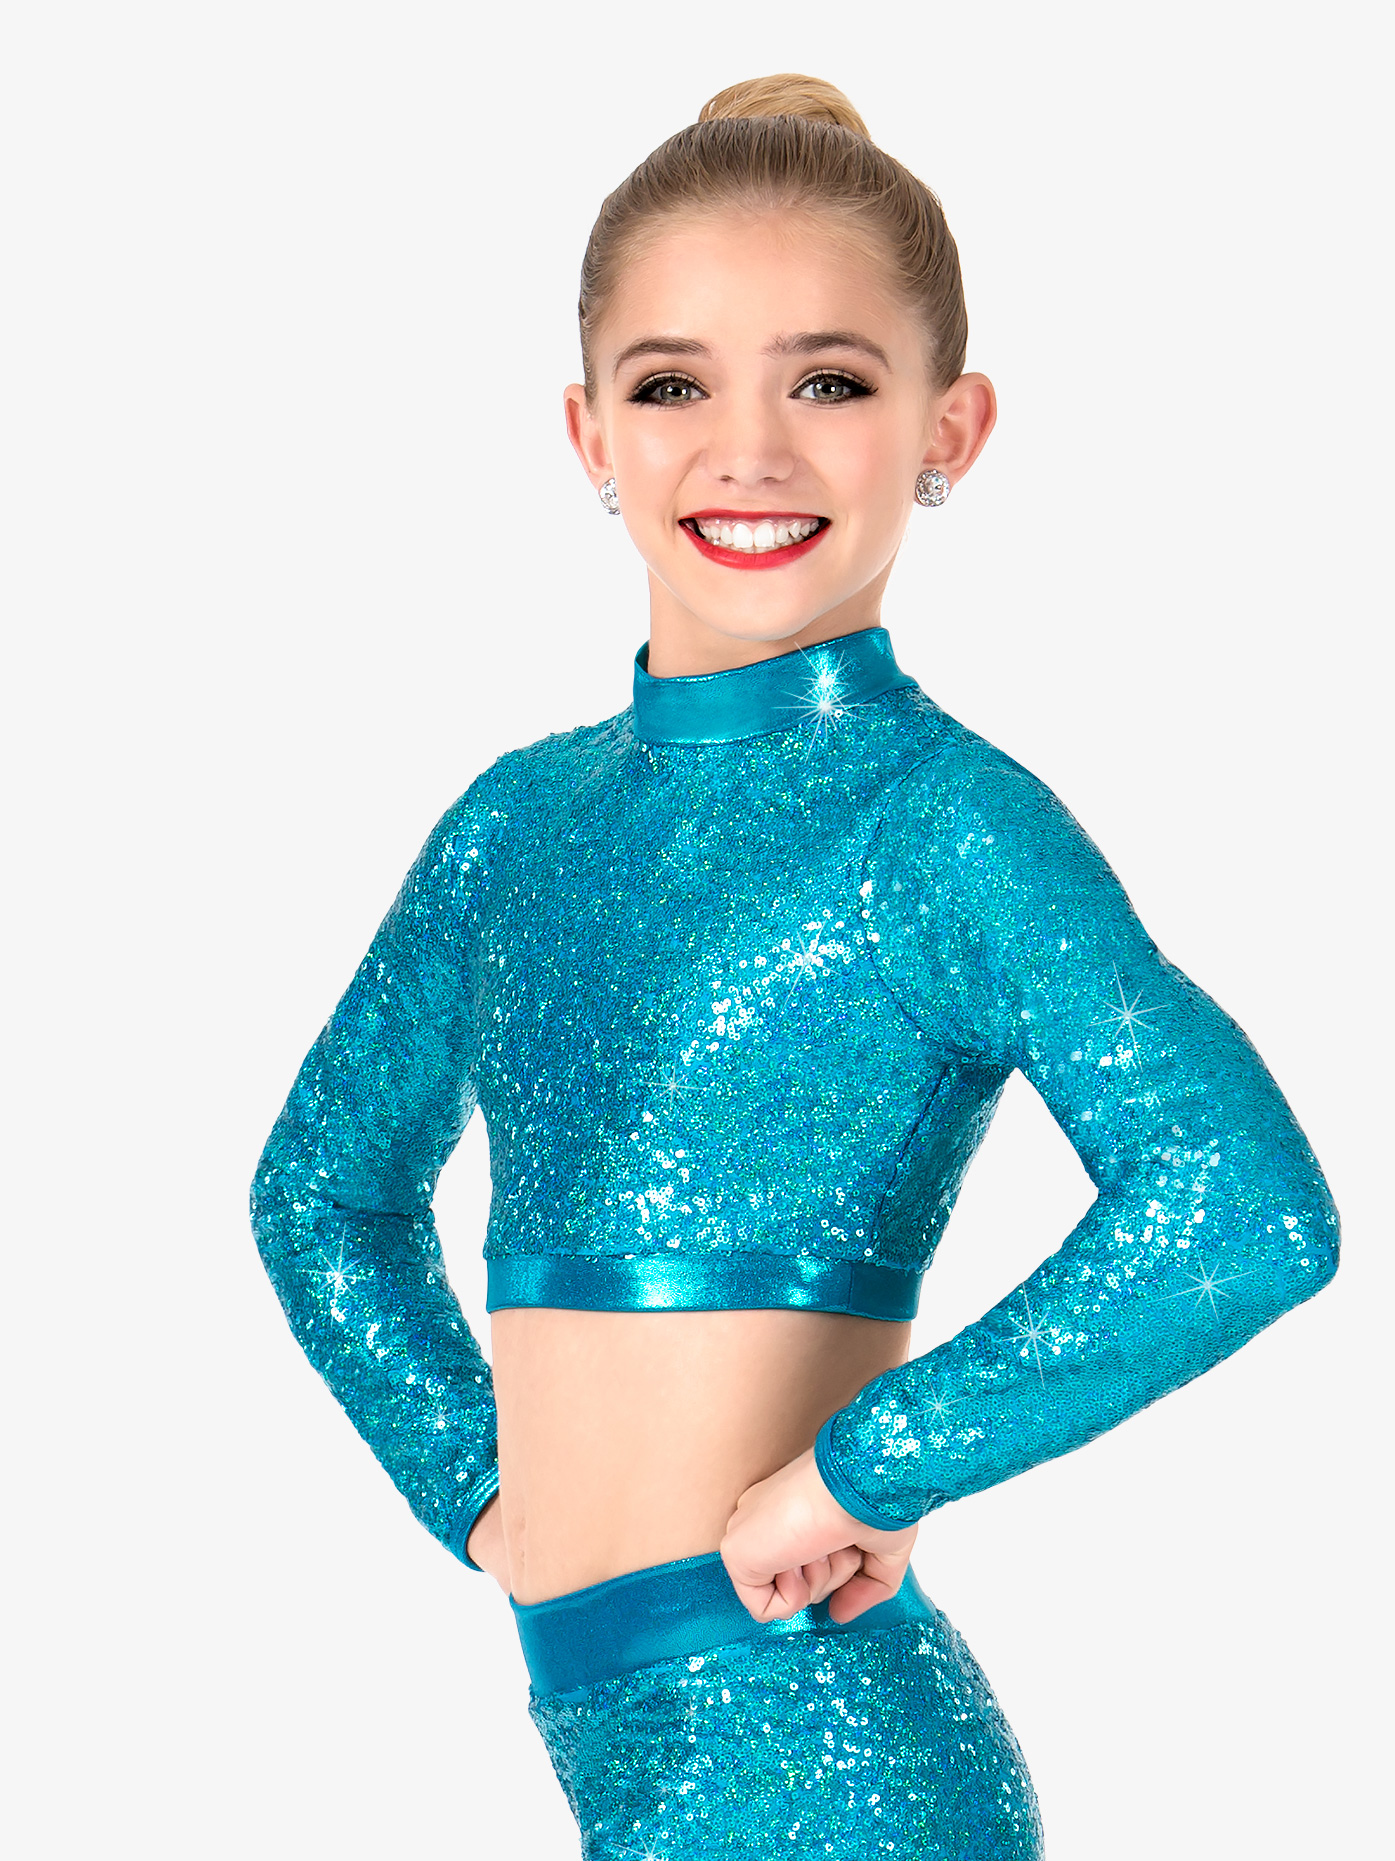 c337073c35d8f5 Girls Sequin Long Sleeve Performance Crop Top - Style No N7389Cx. Loading  zoom